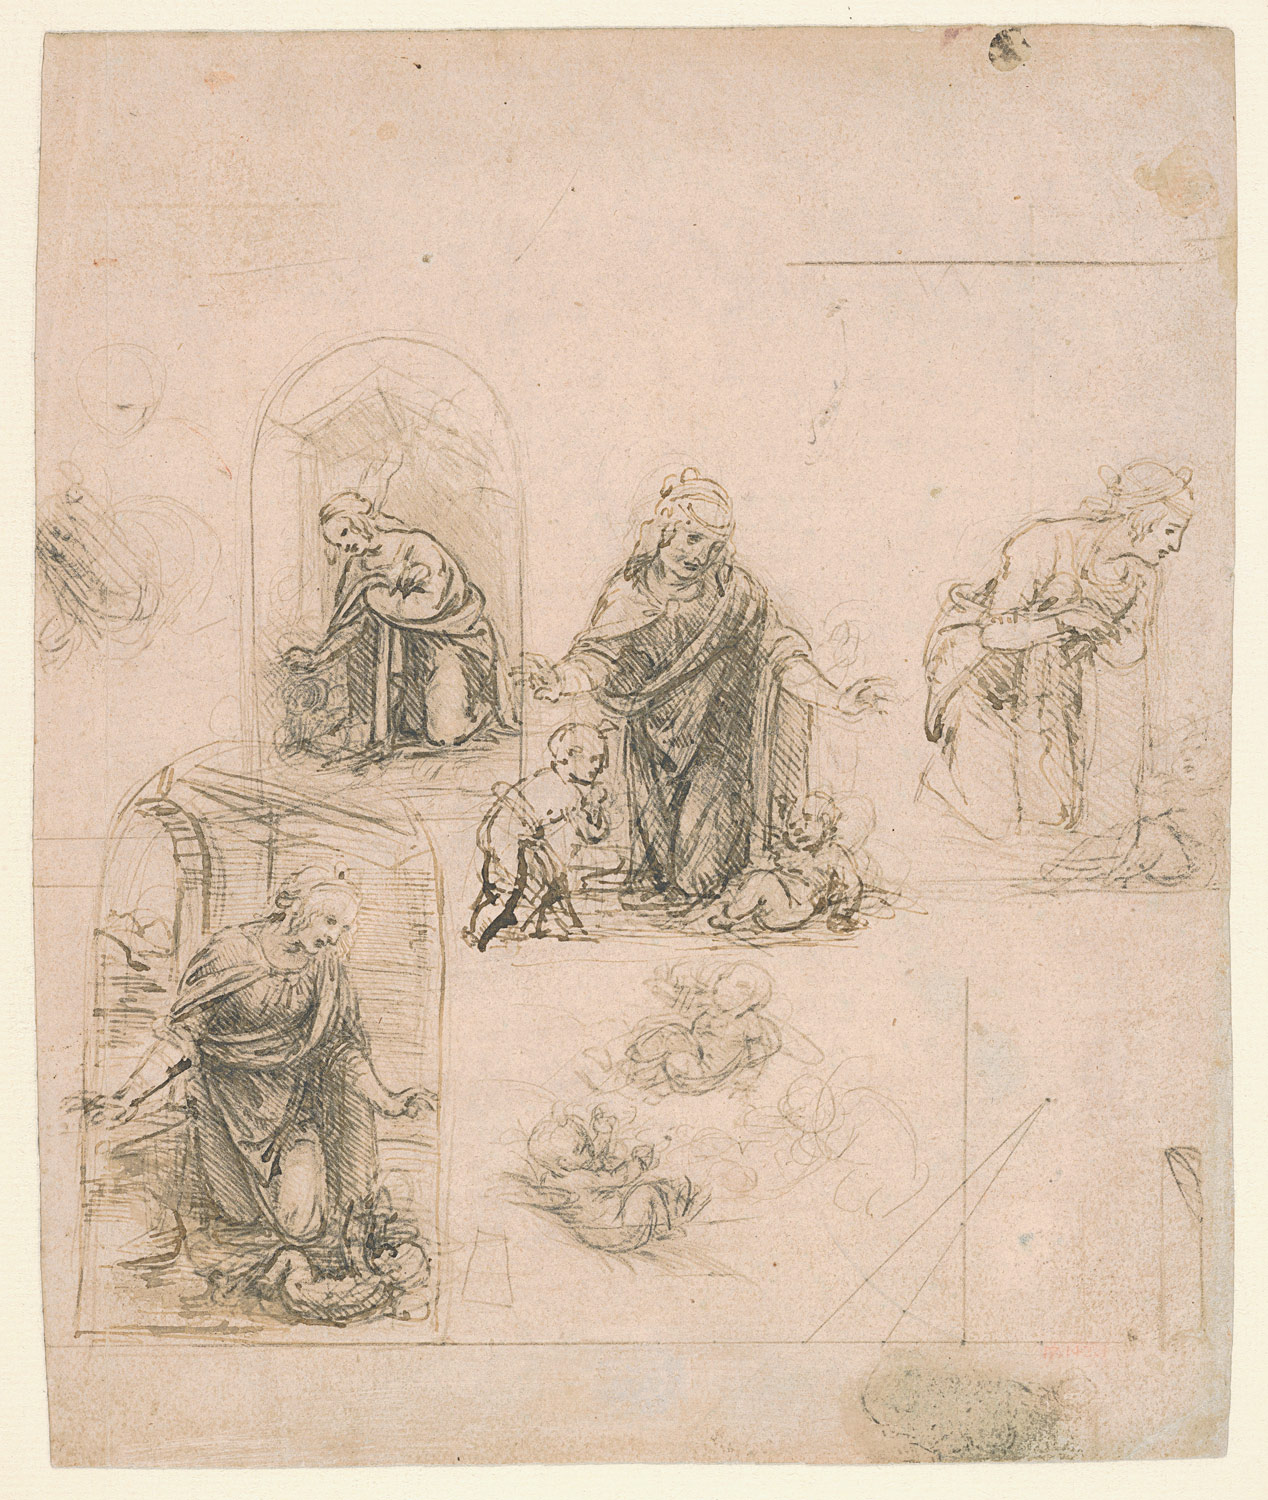 Studies for the Nativity (recto); Three Geometrical Diagrams and a Caricature of a Head (verso)